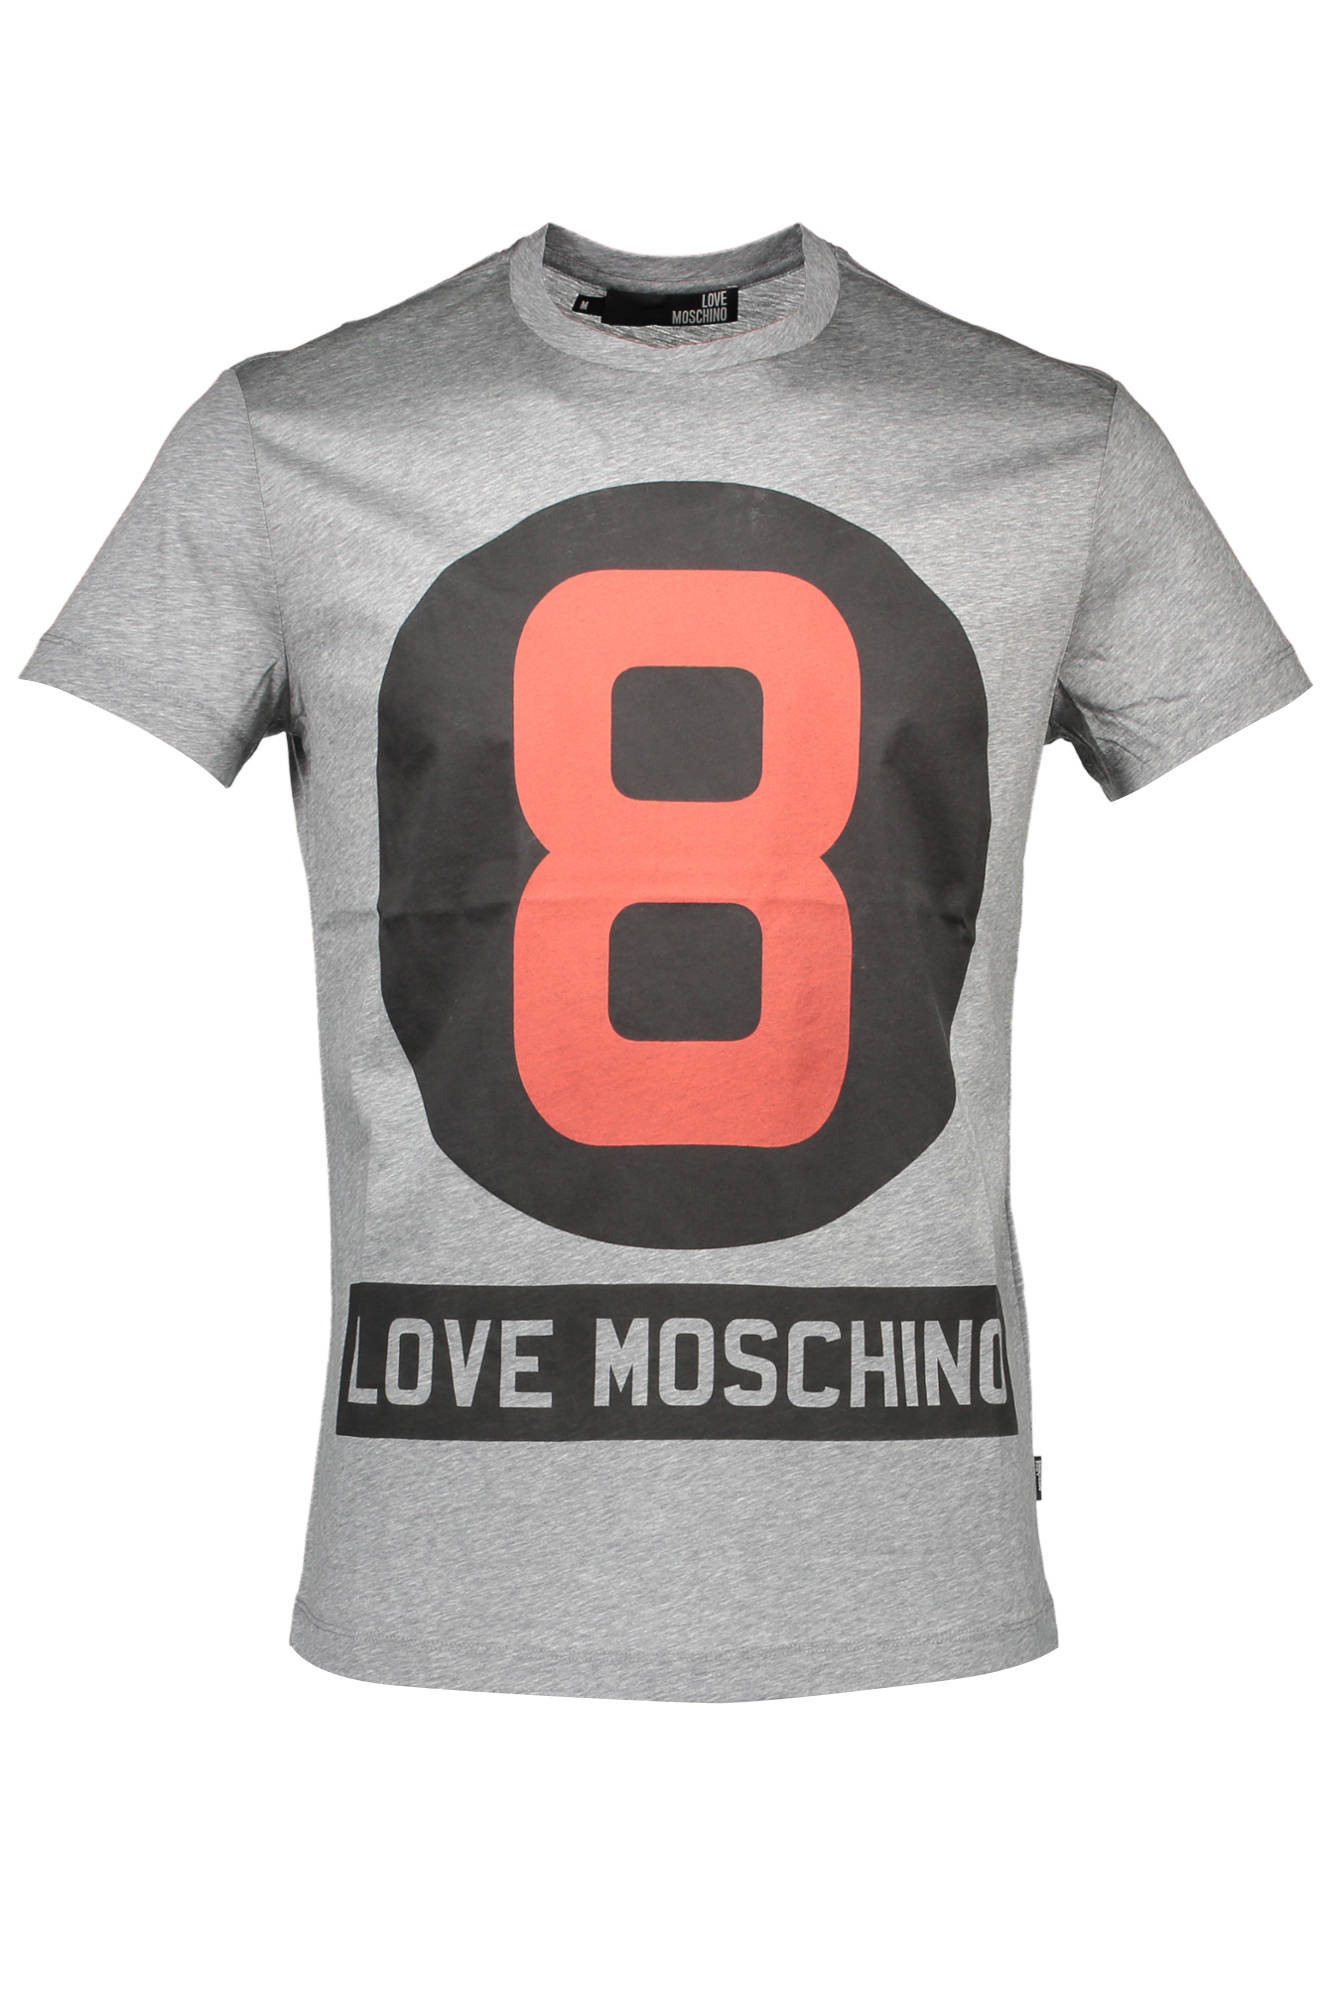 man t shirt love moschino. Black Bedroom Furniture Sets. Home Design Ideas